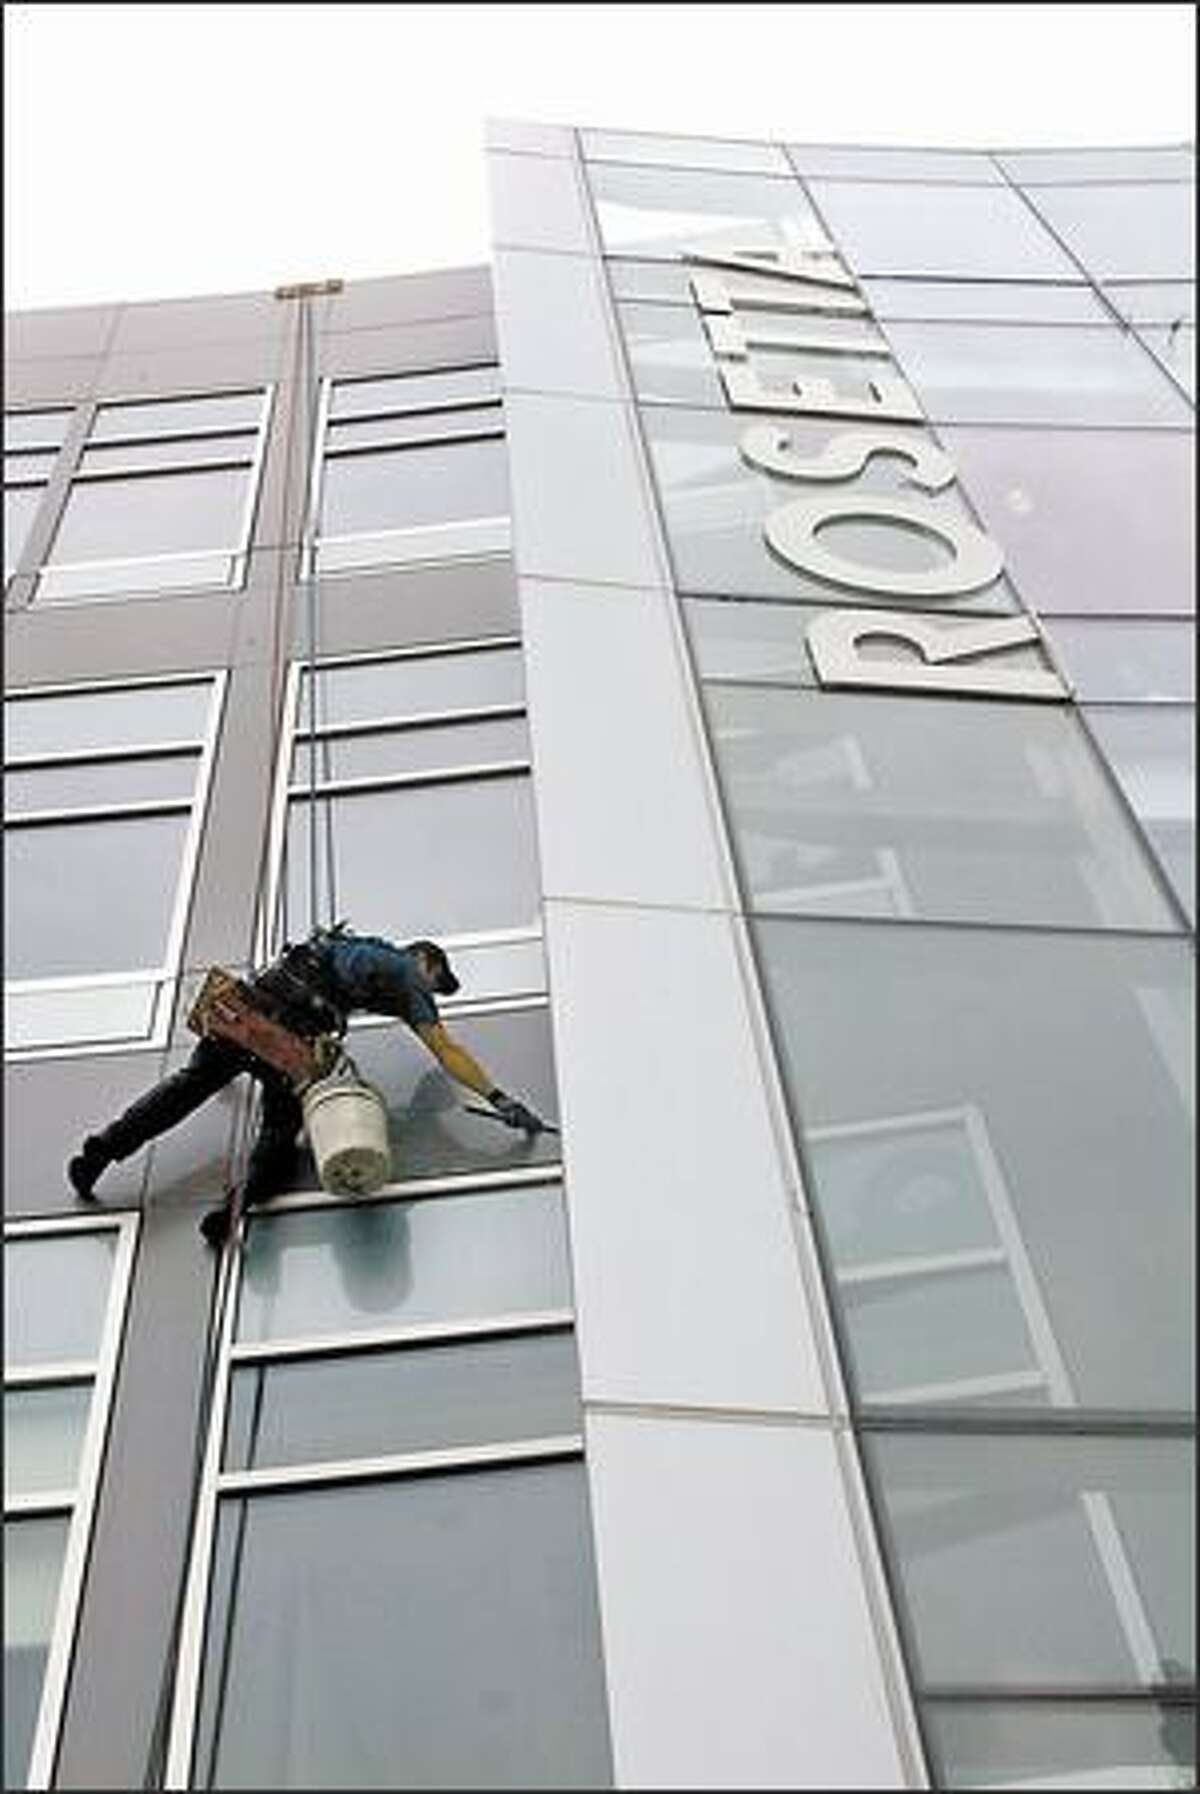 Nate Smith washes Rosetta Biosoftware's building in Seattle's South Lake Union area, where the company moved last month. Smith works for Crosby Window Cleaning.